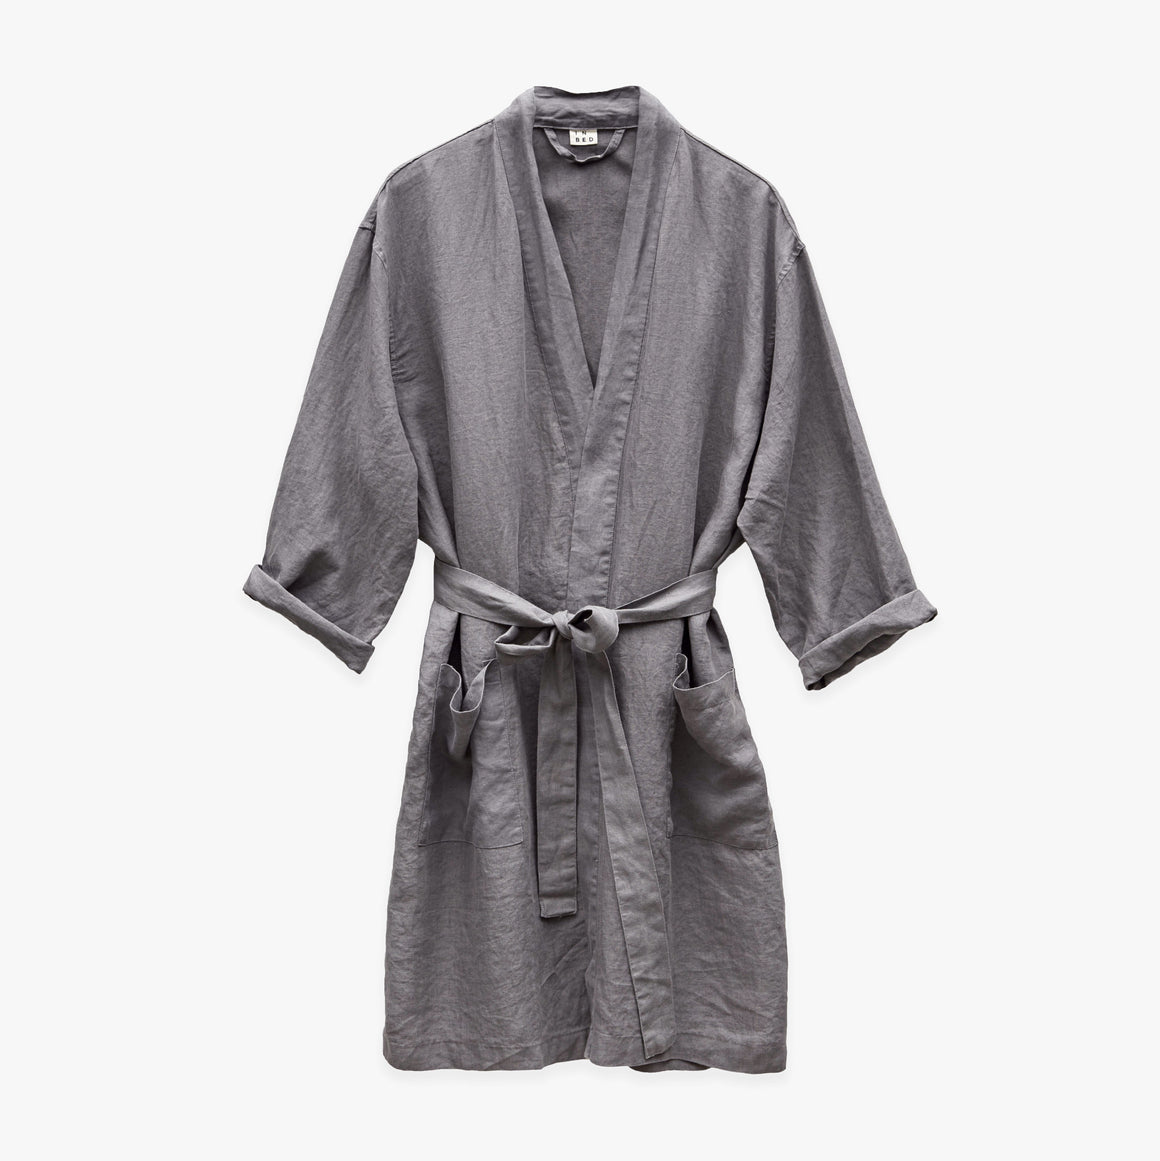 In Bed Linen Robe